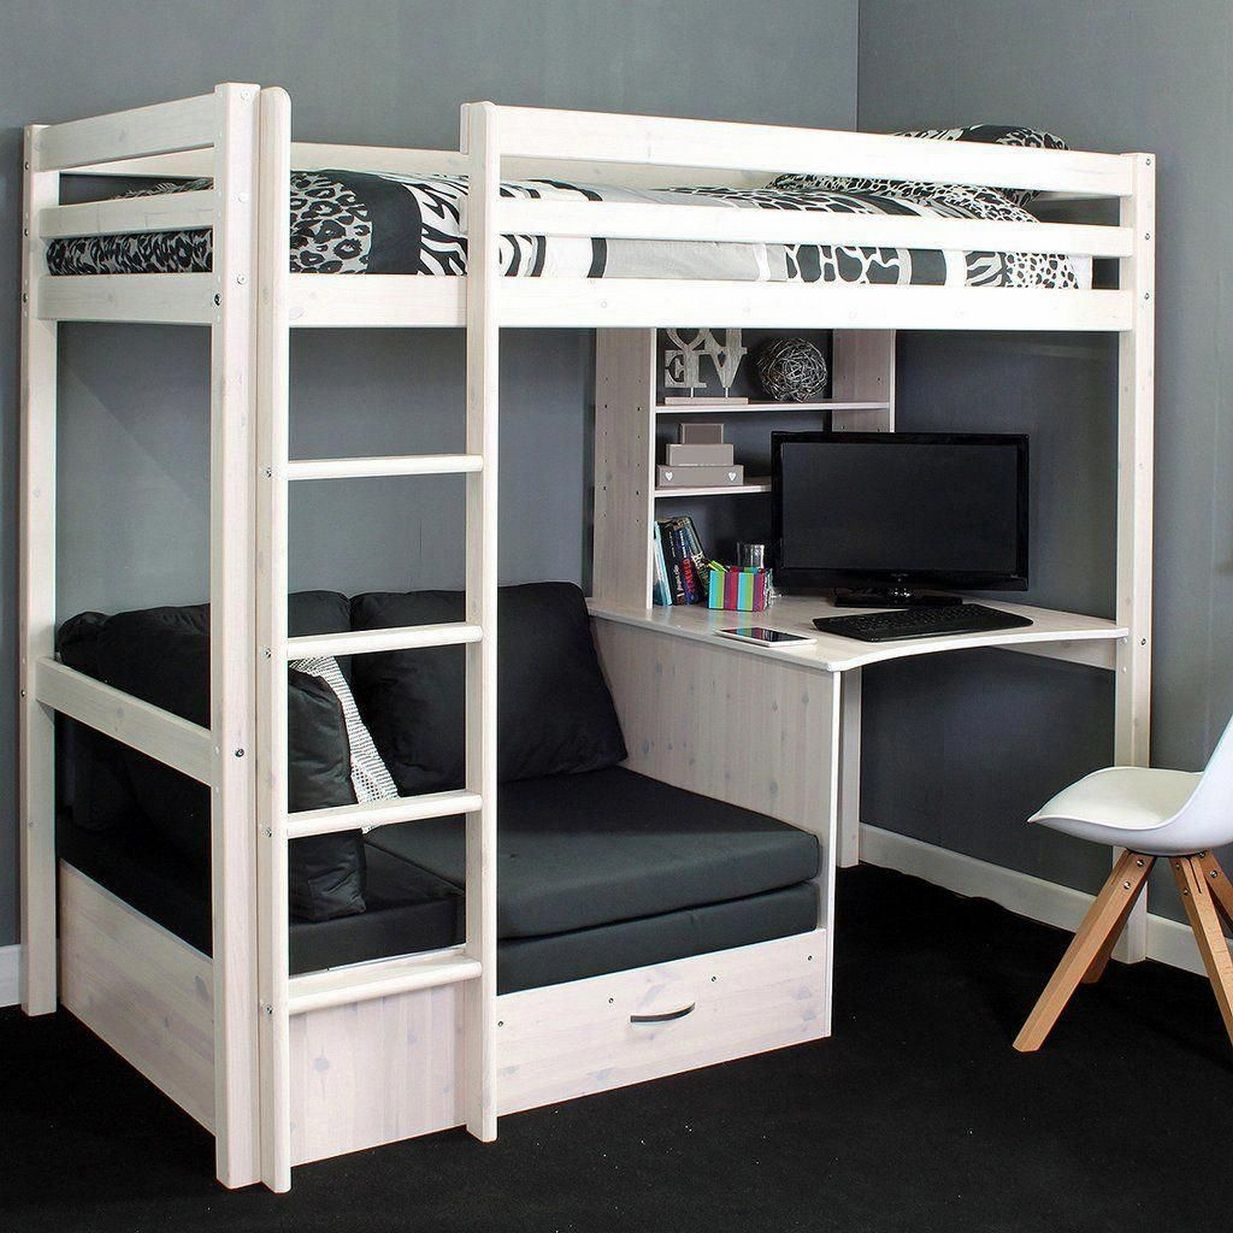 39 Amazing Bunk Beds With Desk Design Ideas Tips Choosing Bunk Beds With Desks 38 Girls Loft Bed Loft Beds For Teens Cool Bunk Beds